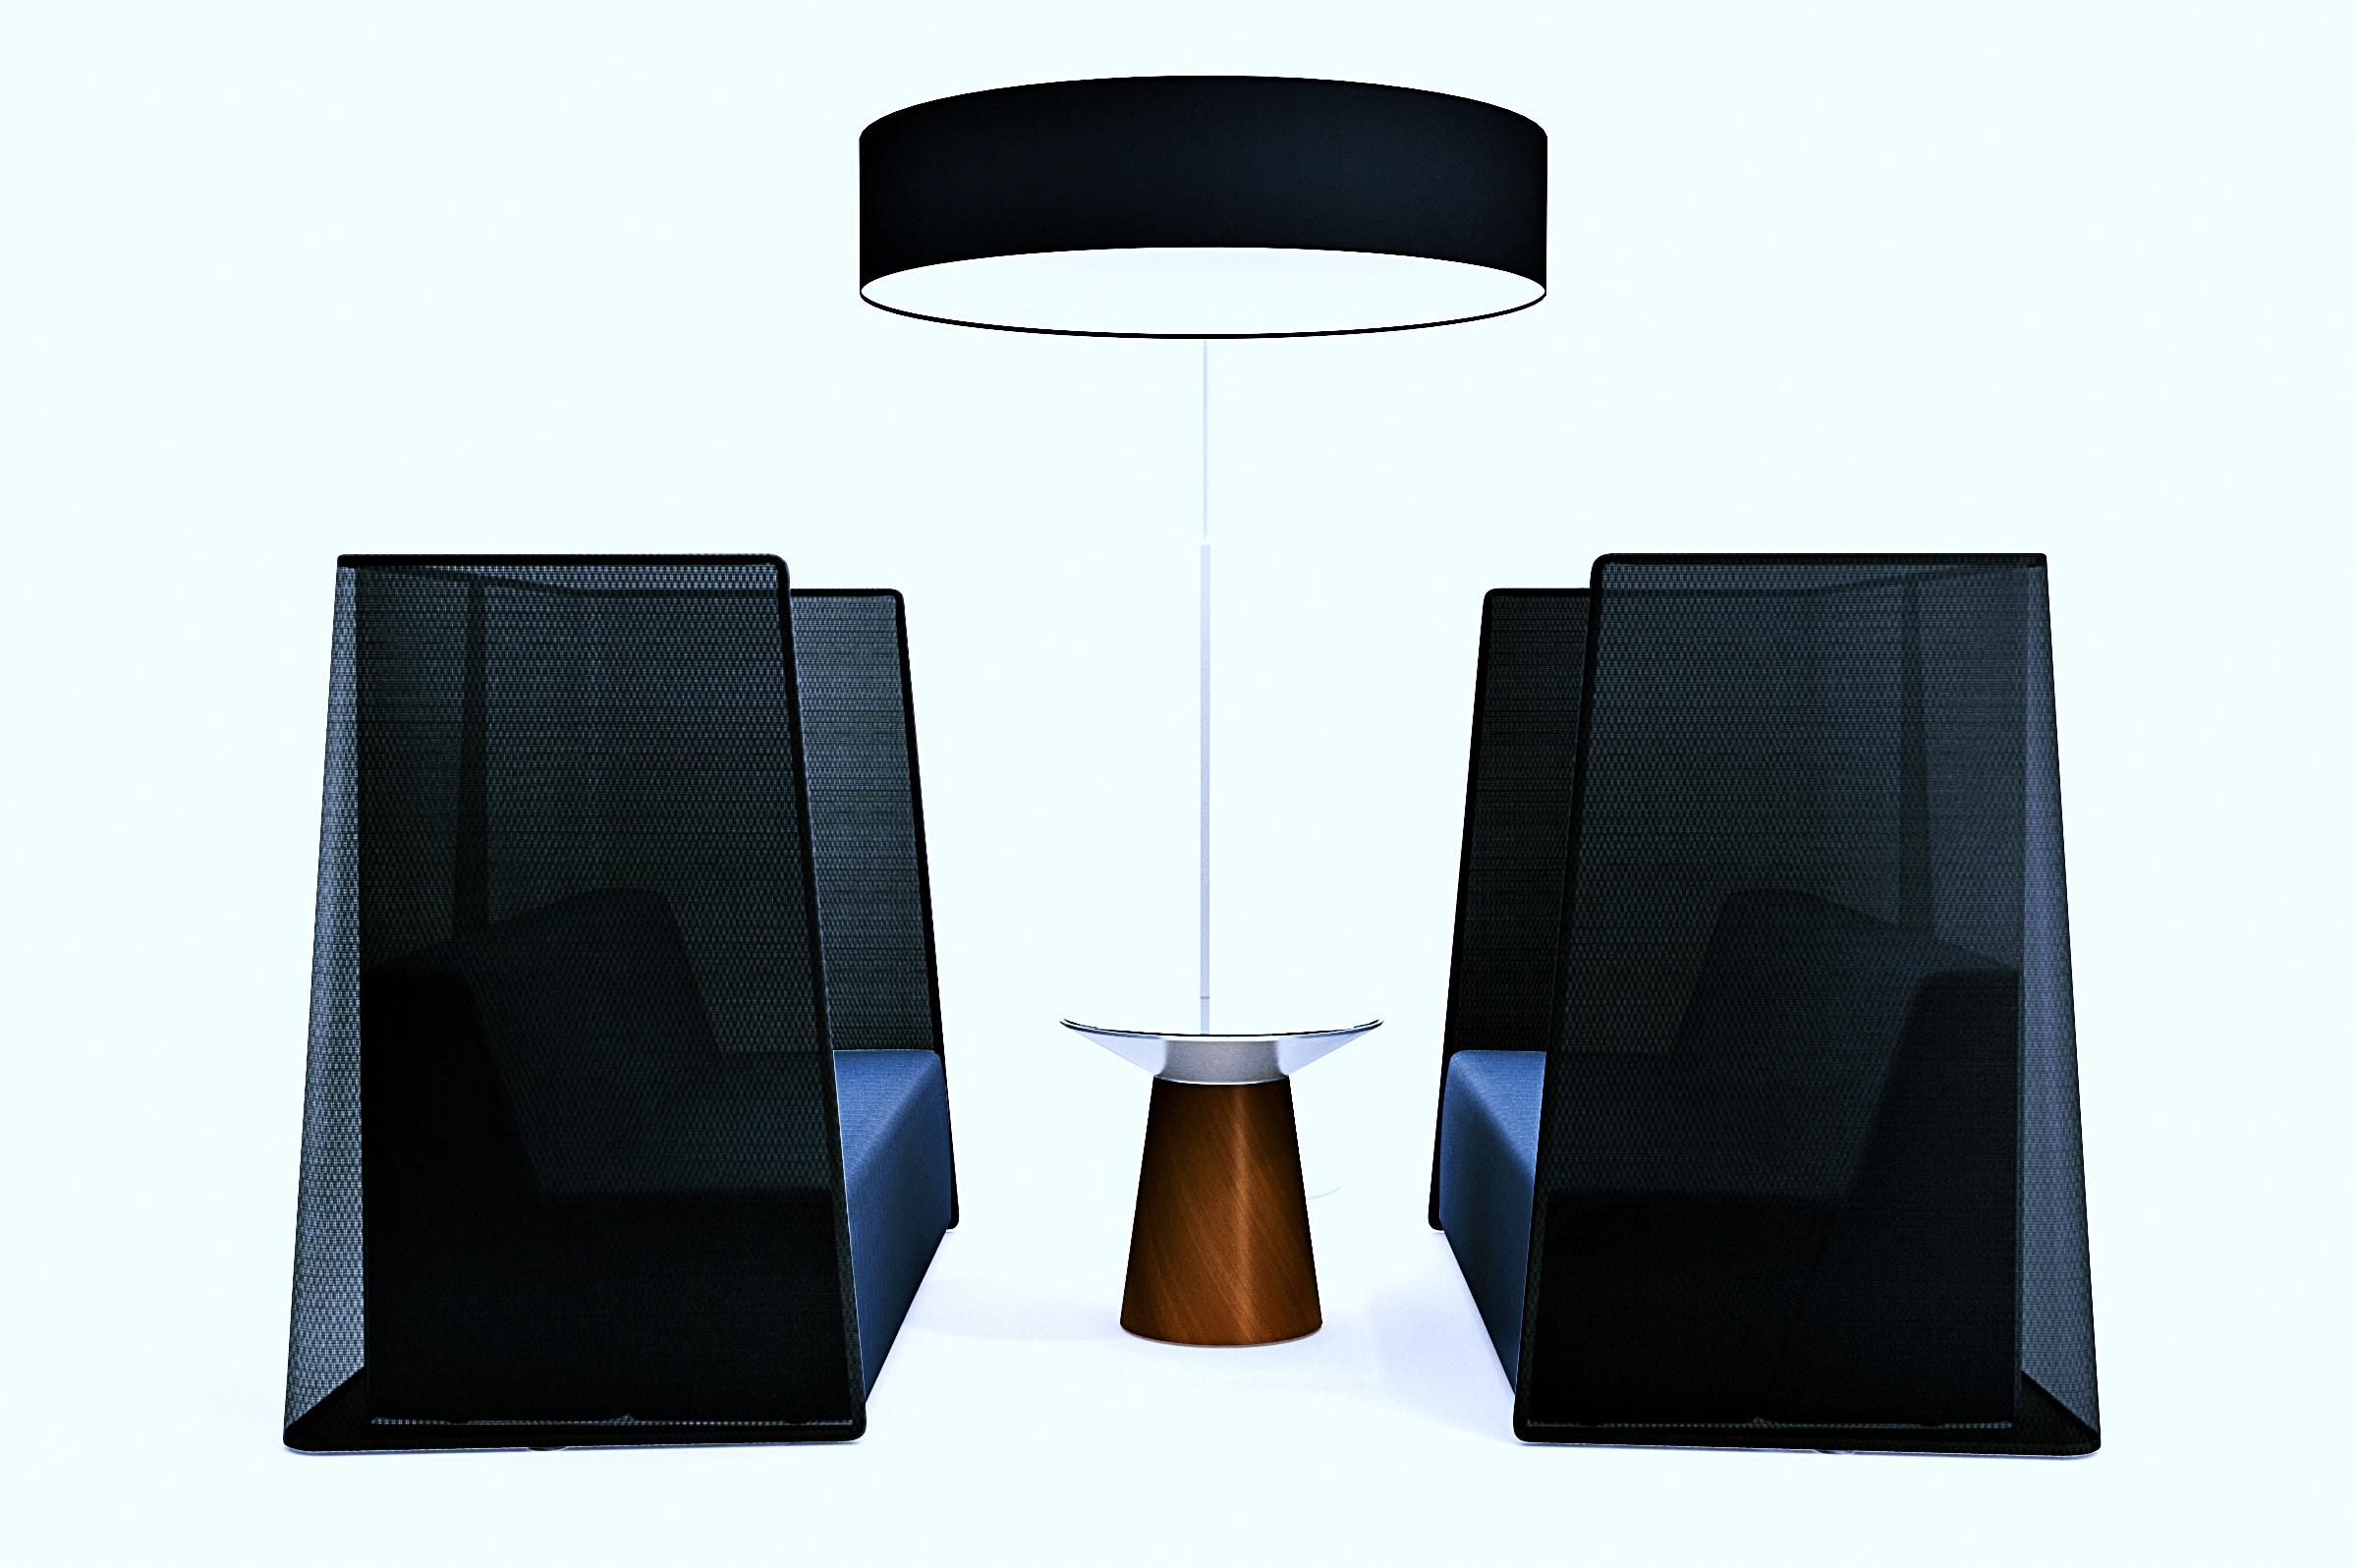 Why are table lamps so important? Tiffany table lamps